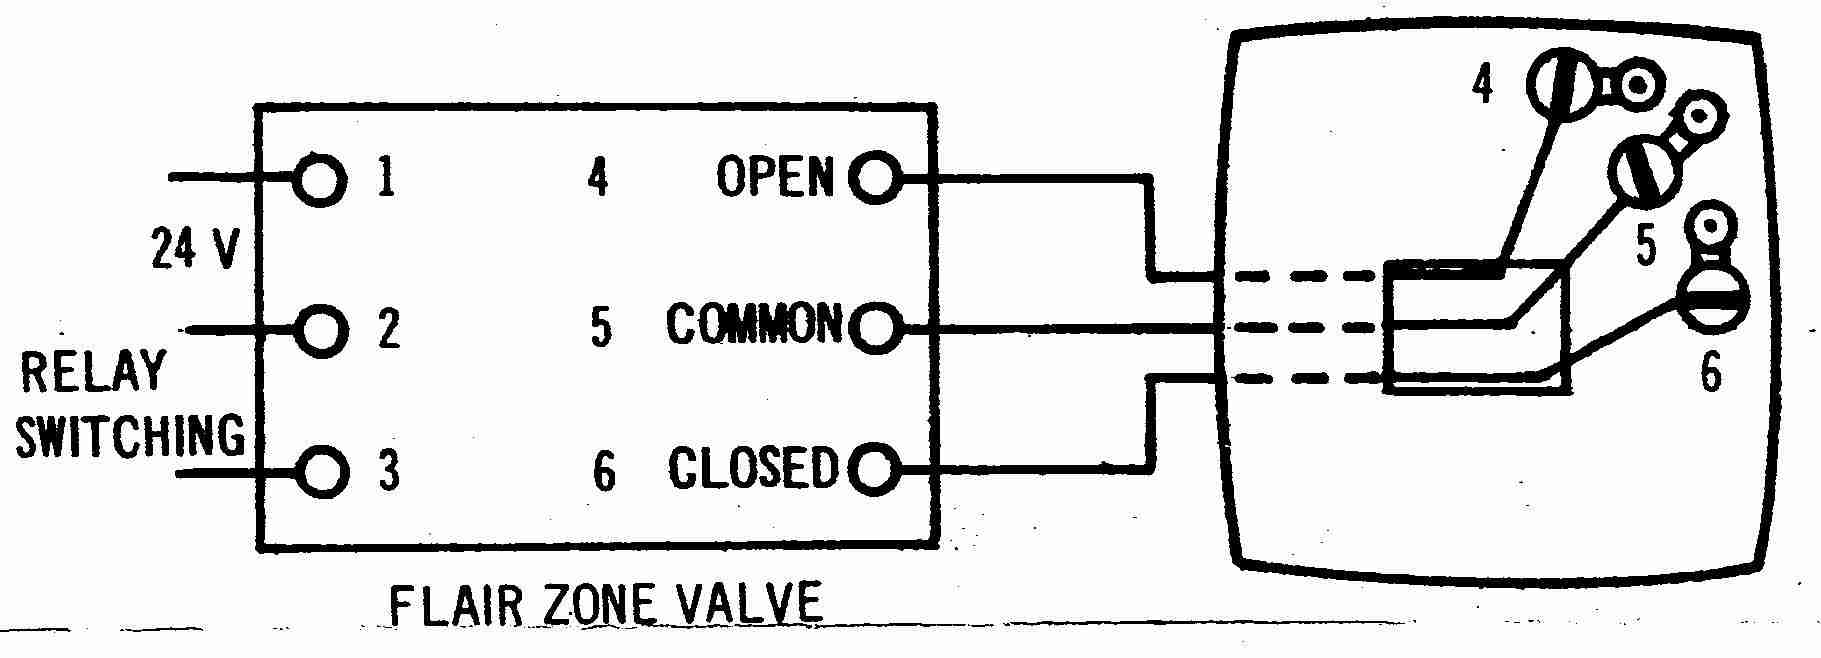 zone valve wiring installation instructions guide to heating rh inspectapedia com honeywell motorized zone valve wiring diagram honeywell zone valve wiring diagram 2